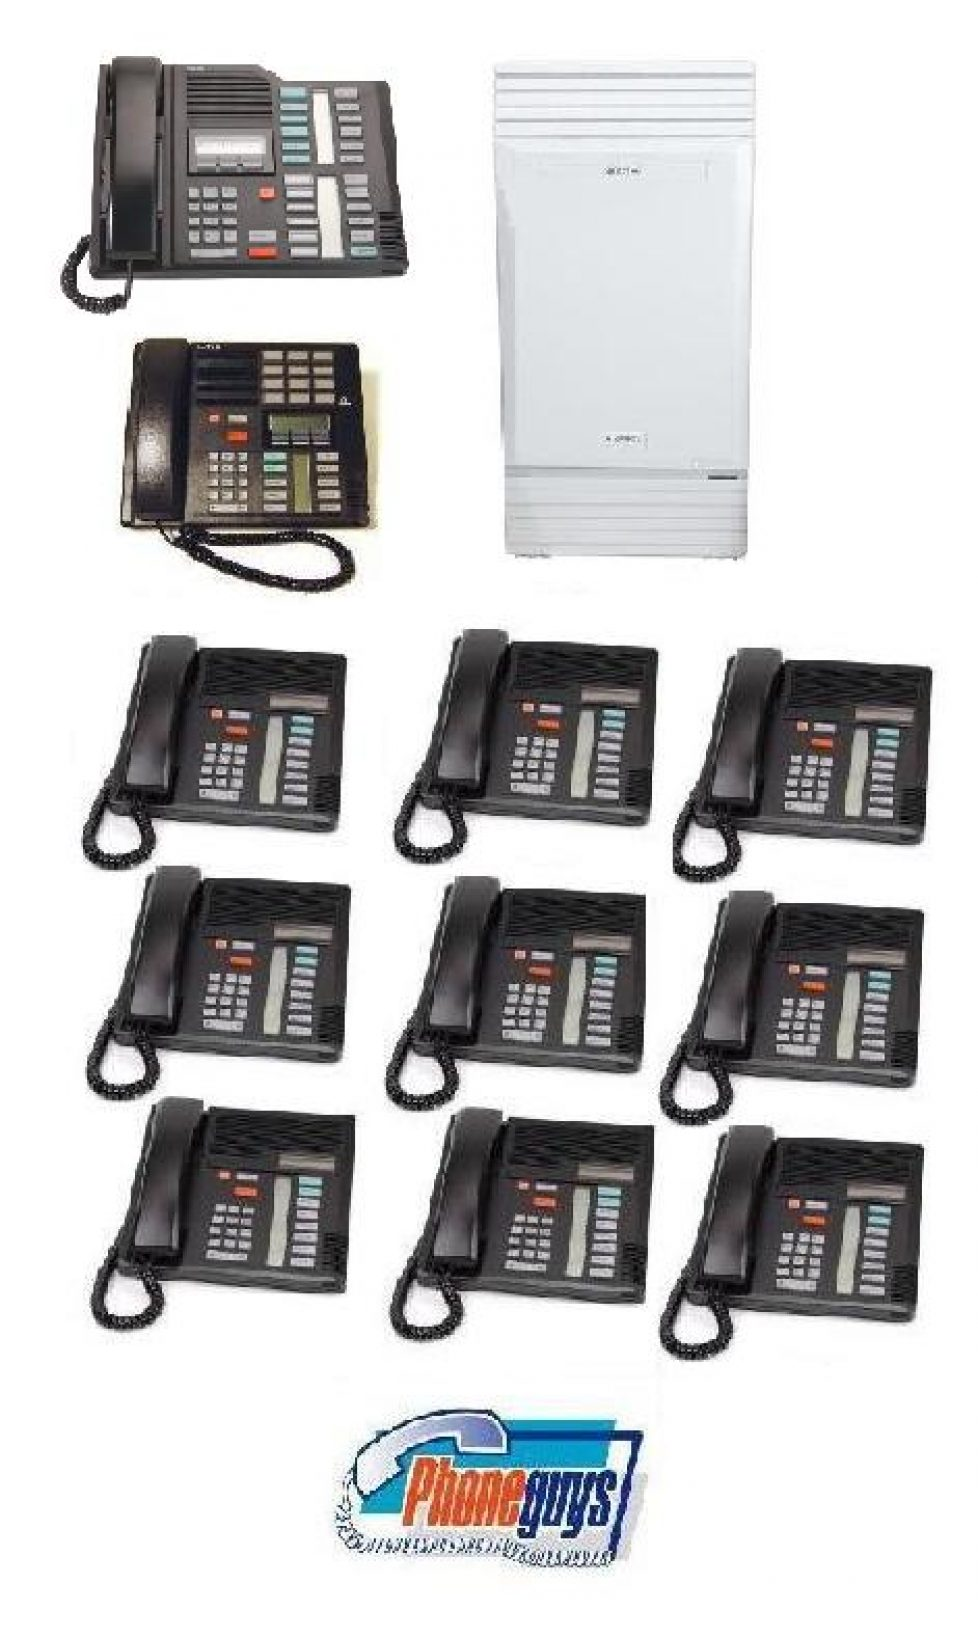 Modular ICS with 1-M7324 1-M7310 9-M7208 Phones